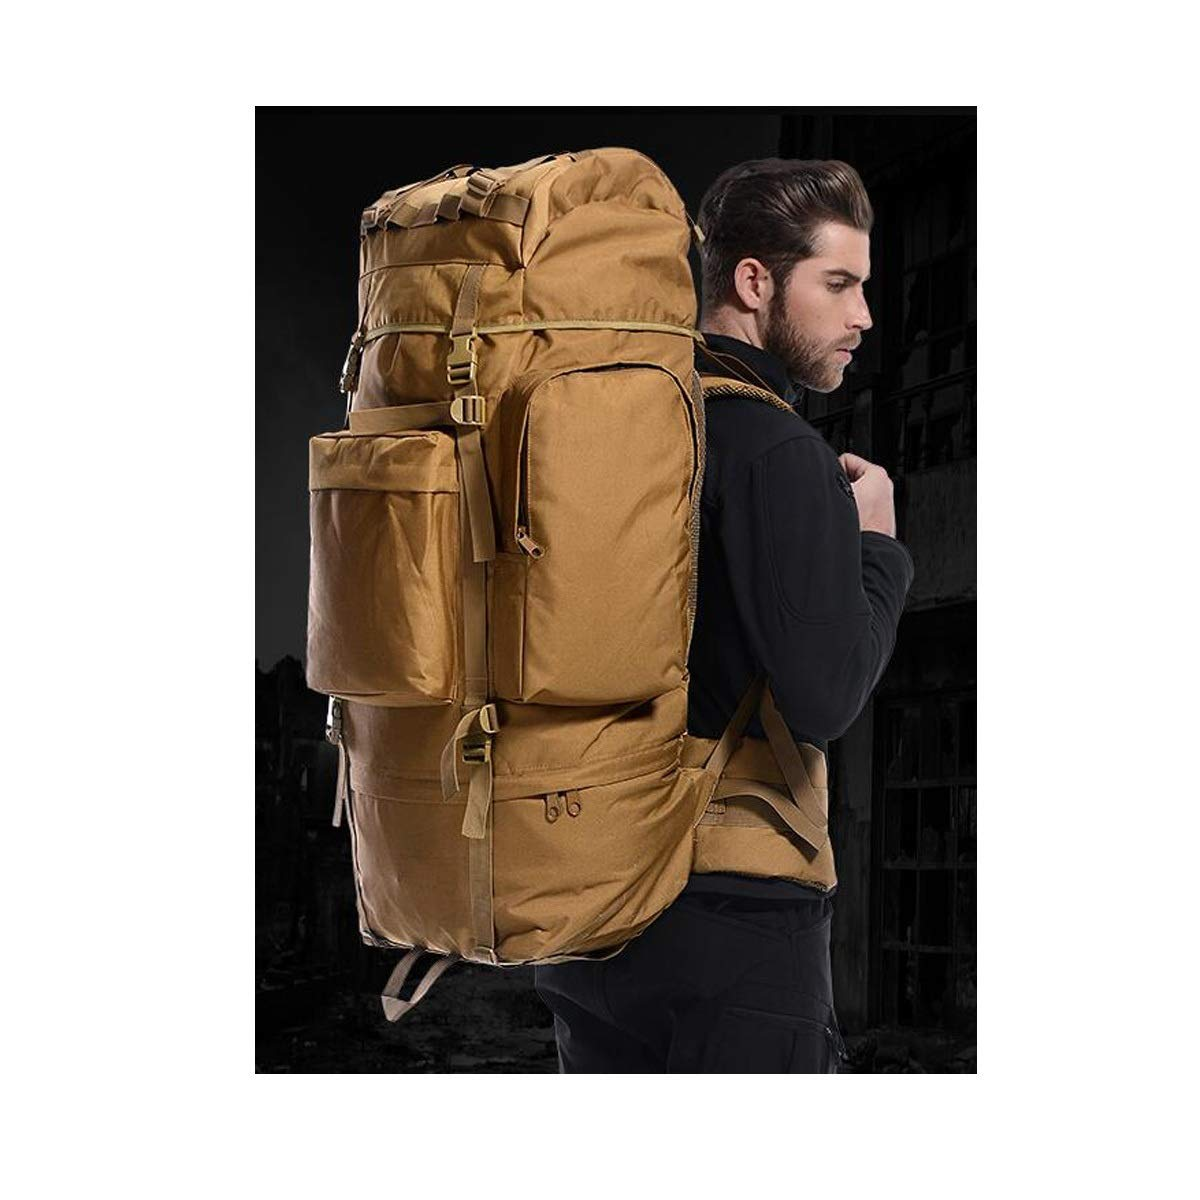 70L Latest Models Haoyushangmao Hiking and Camping Inner Frame Waterproof Backpack-115L Color : Jungle Color, Size : 115L